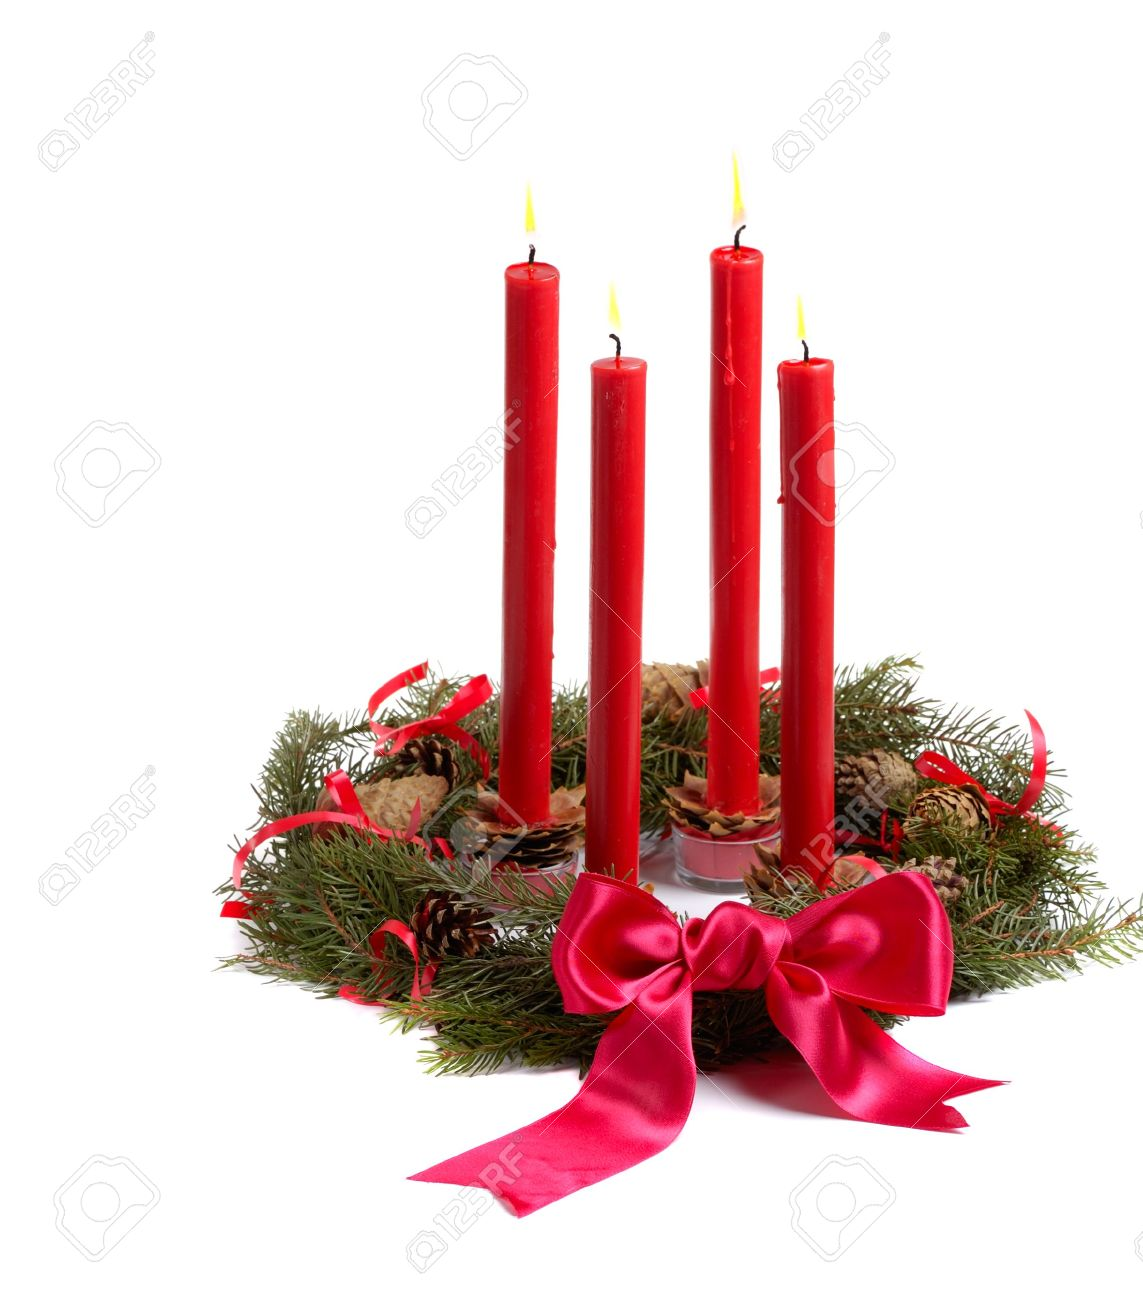 christmas wreath with red candles and pine cones isolated on